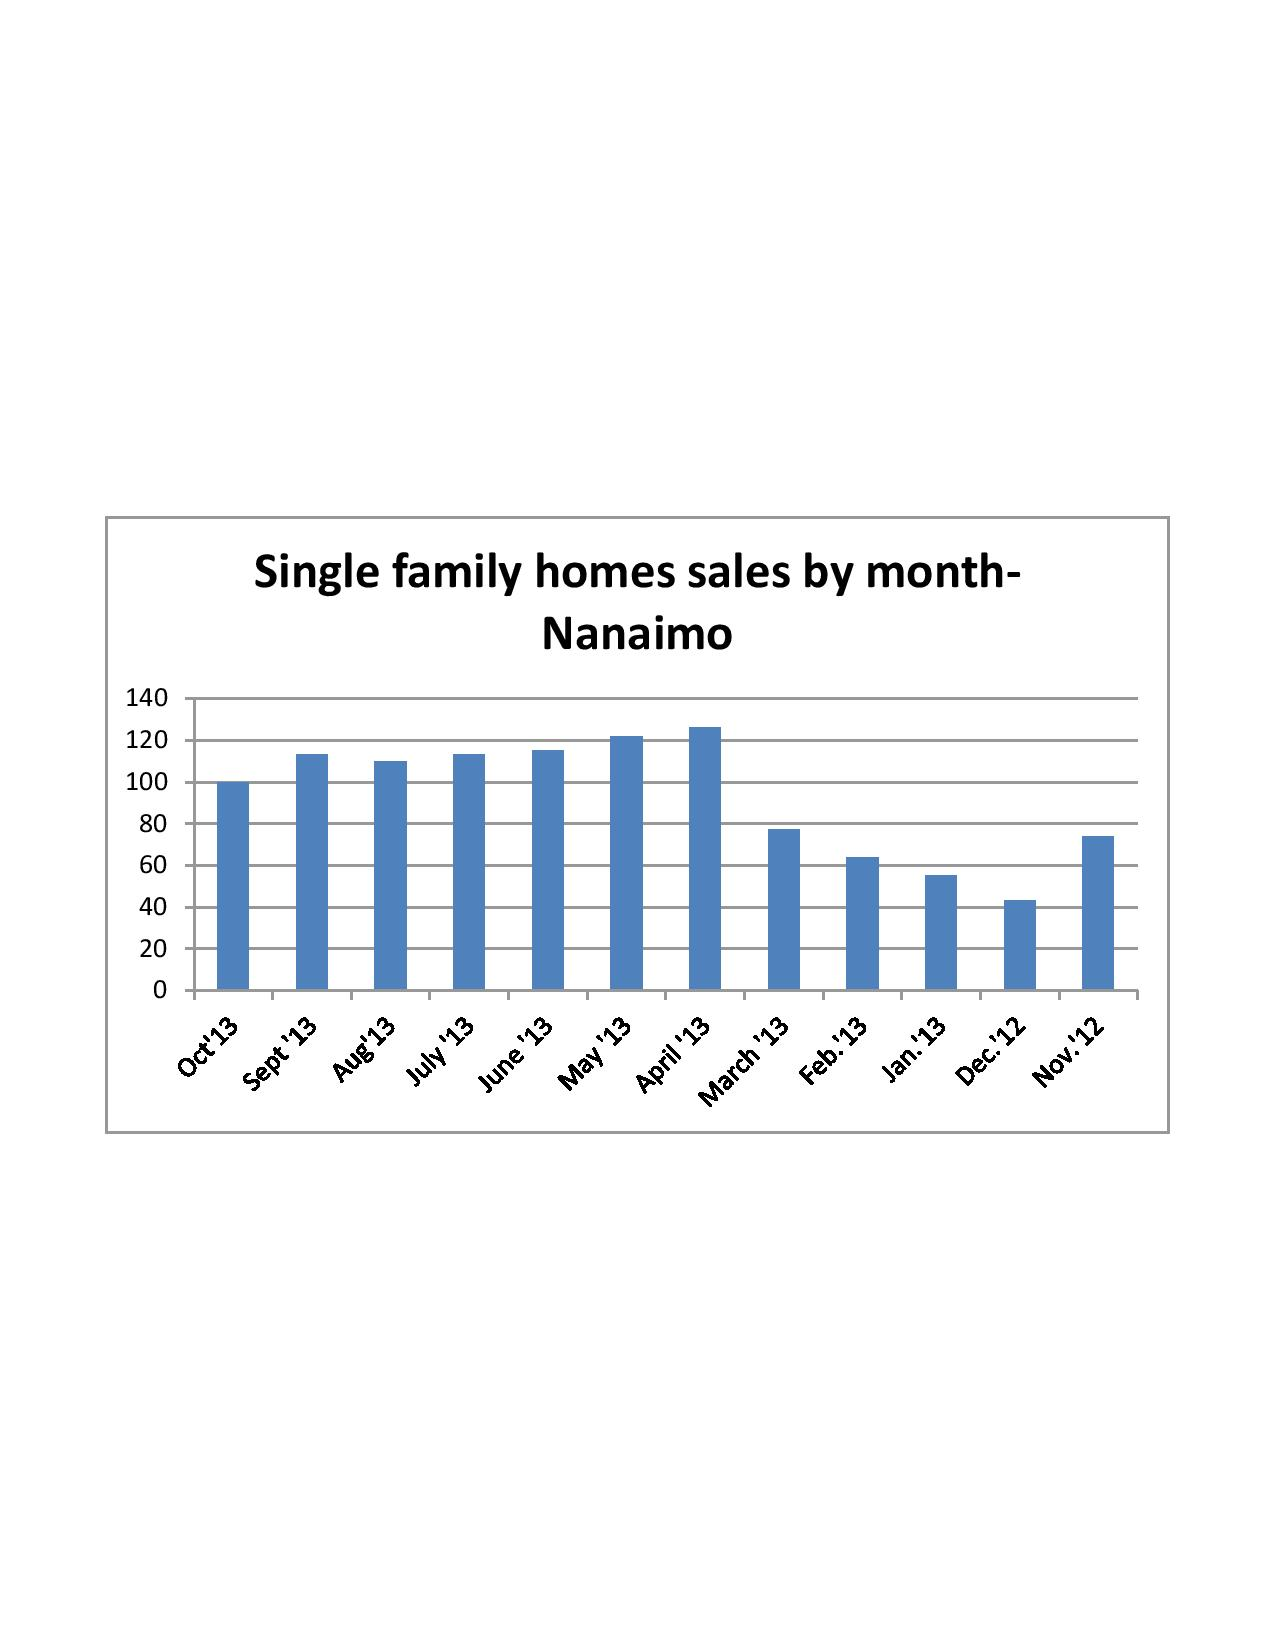 Home sales by month in Nanaimo